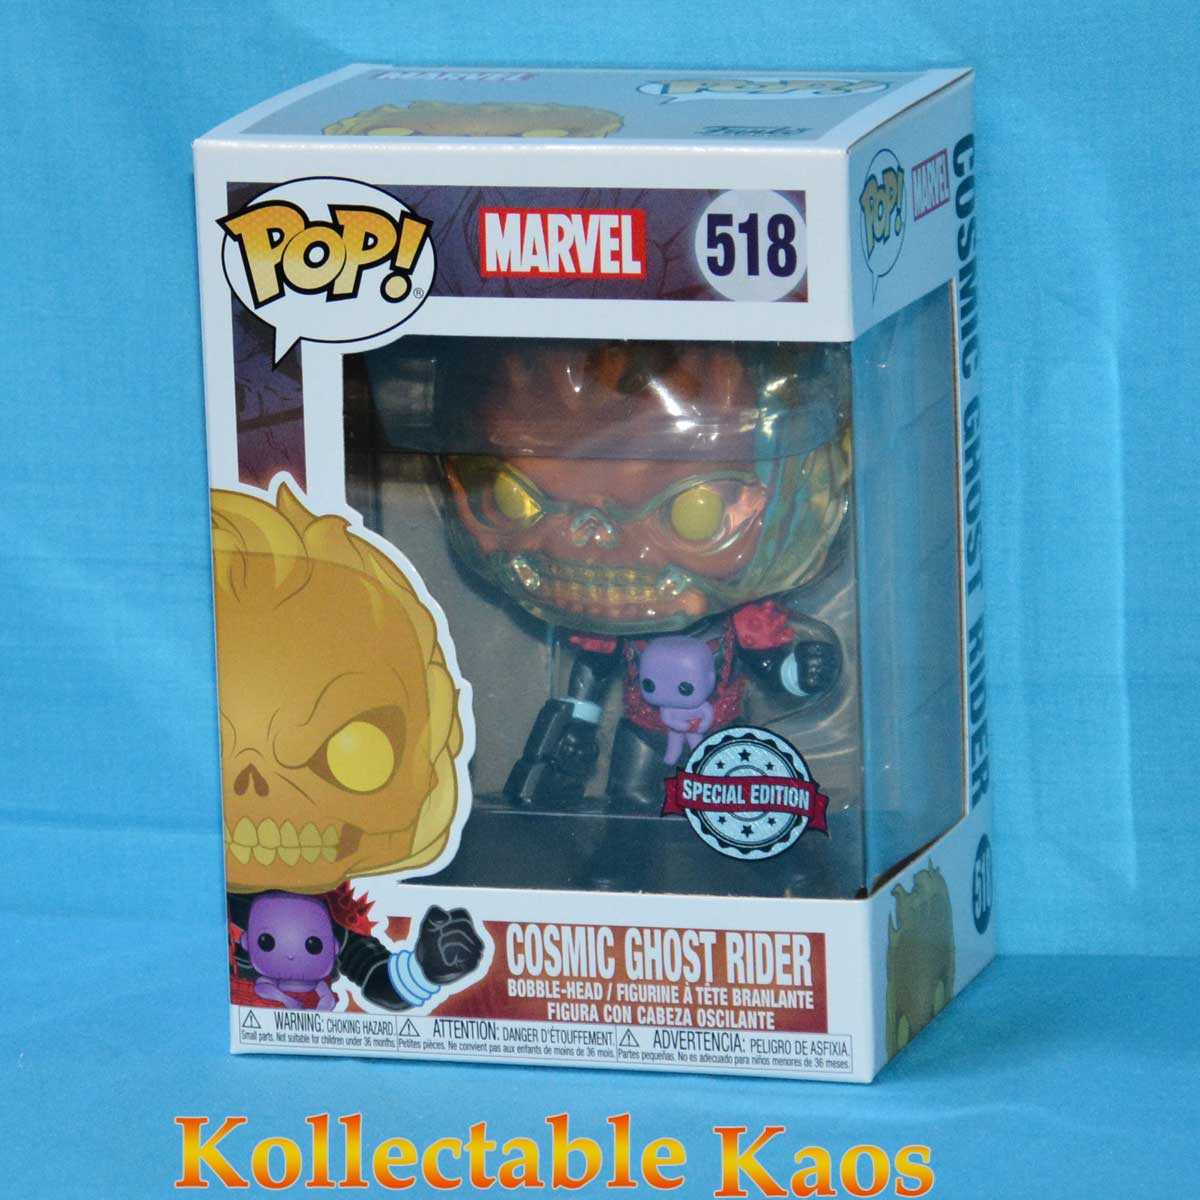 Cosmic Ghost Rider Funko Pop Vinyl Marvel